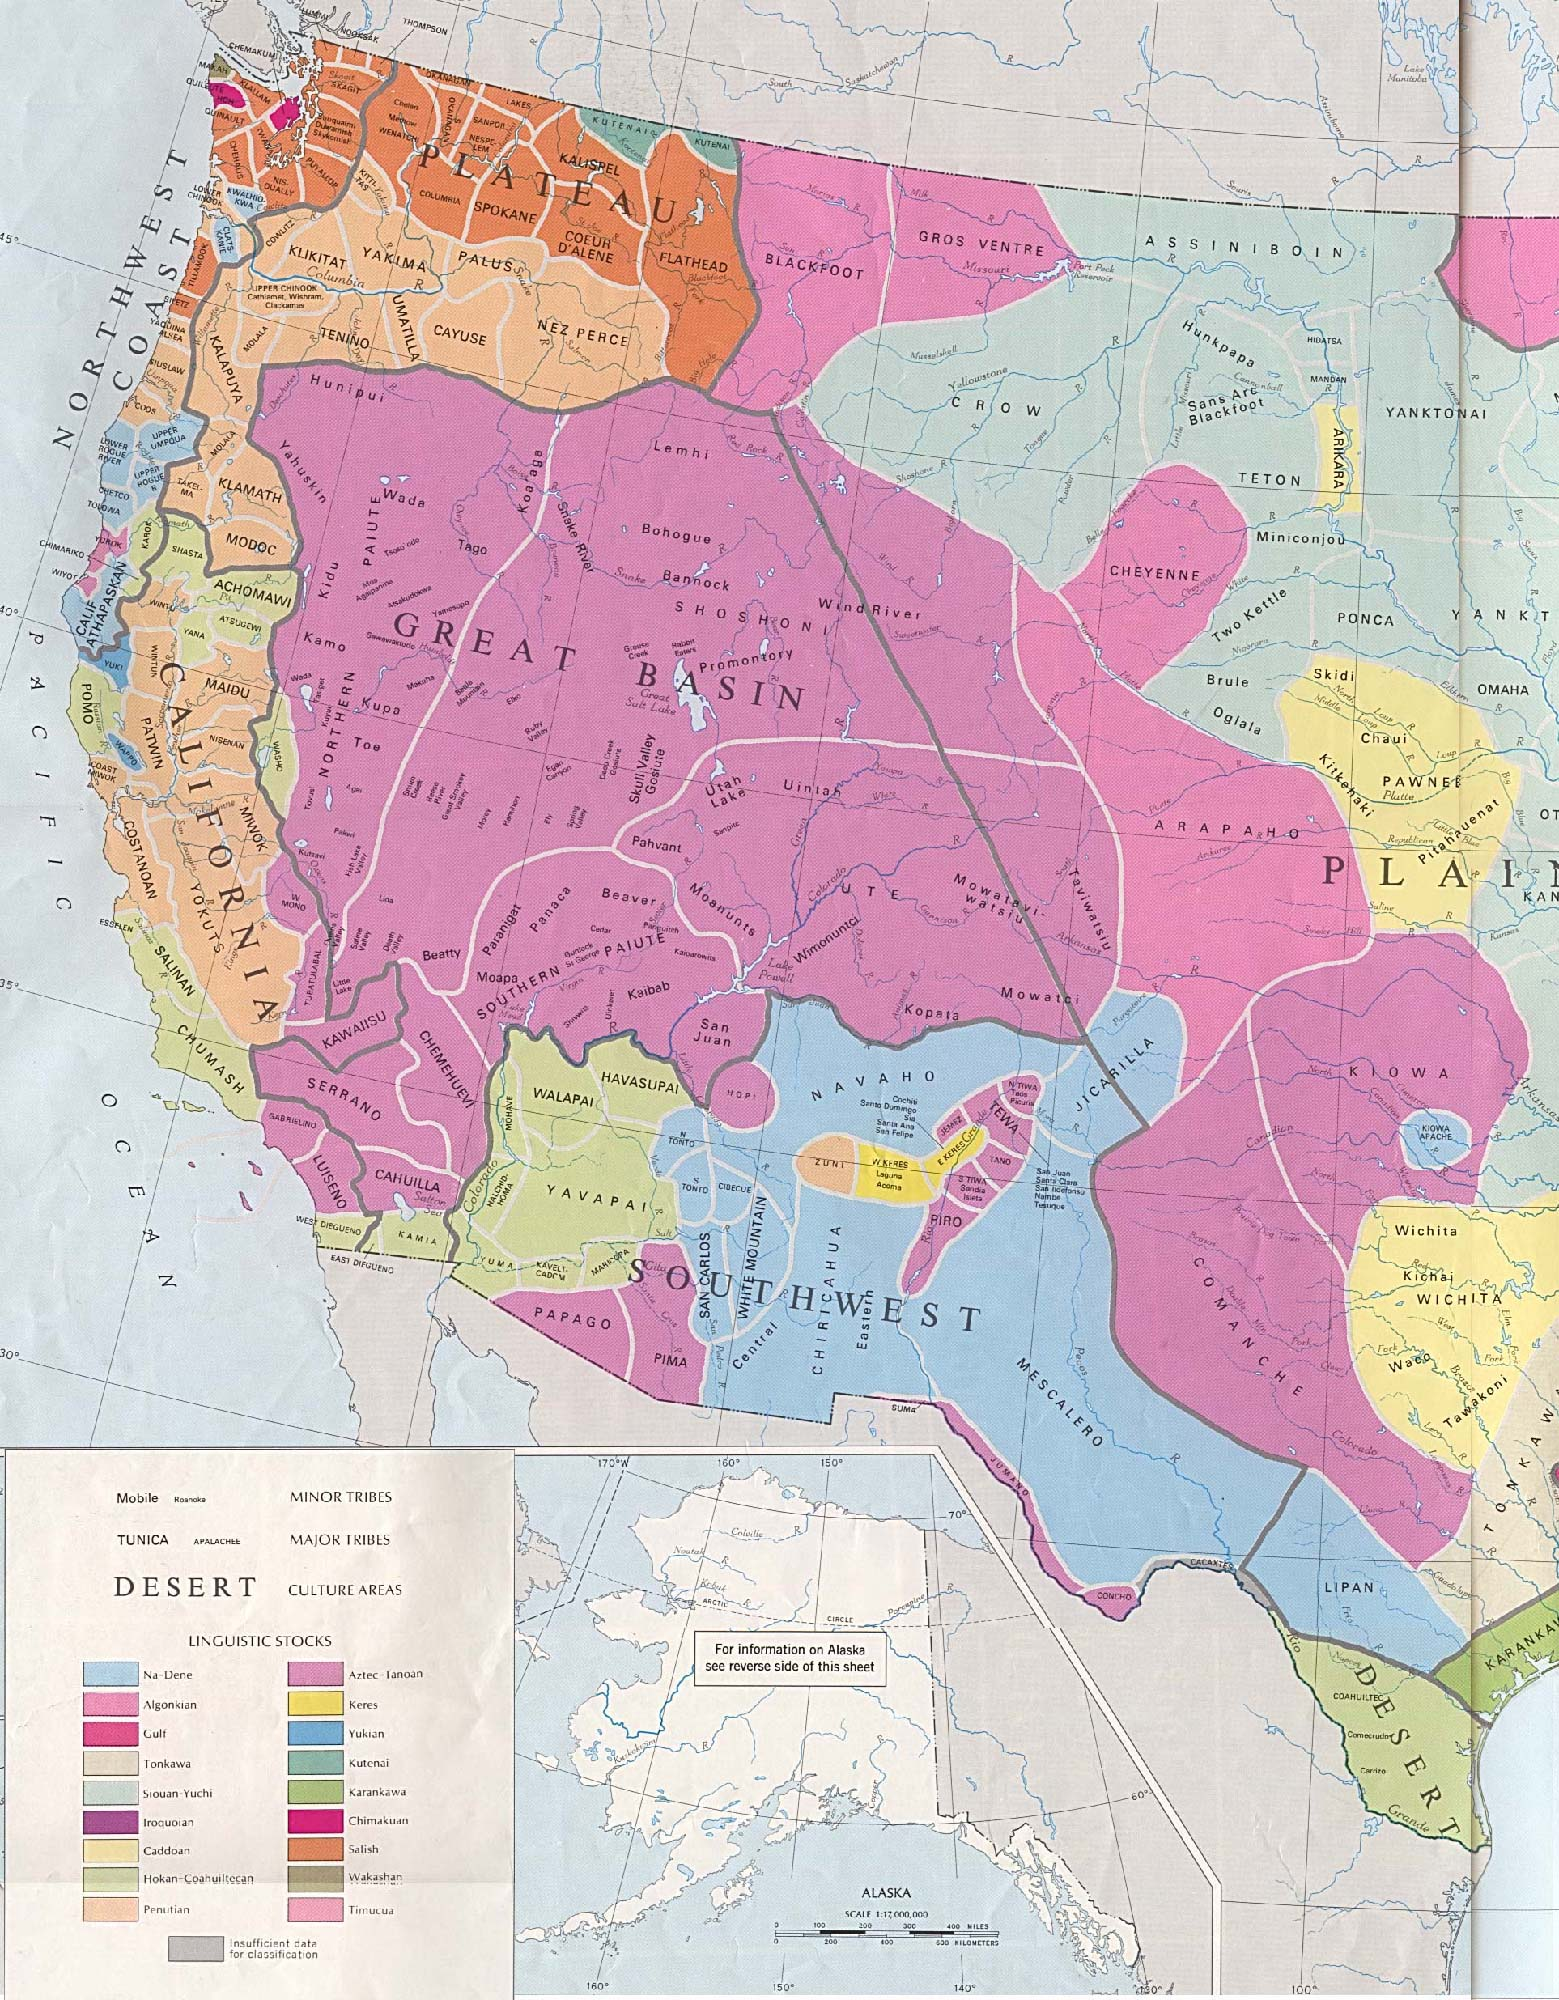 early indian tribes culture areas and linguistic stocks western u s